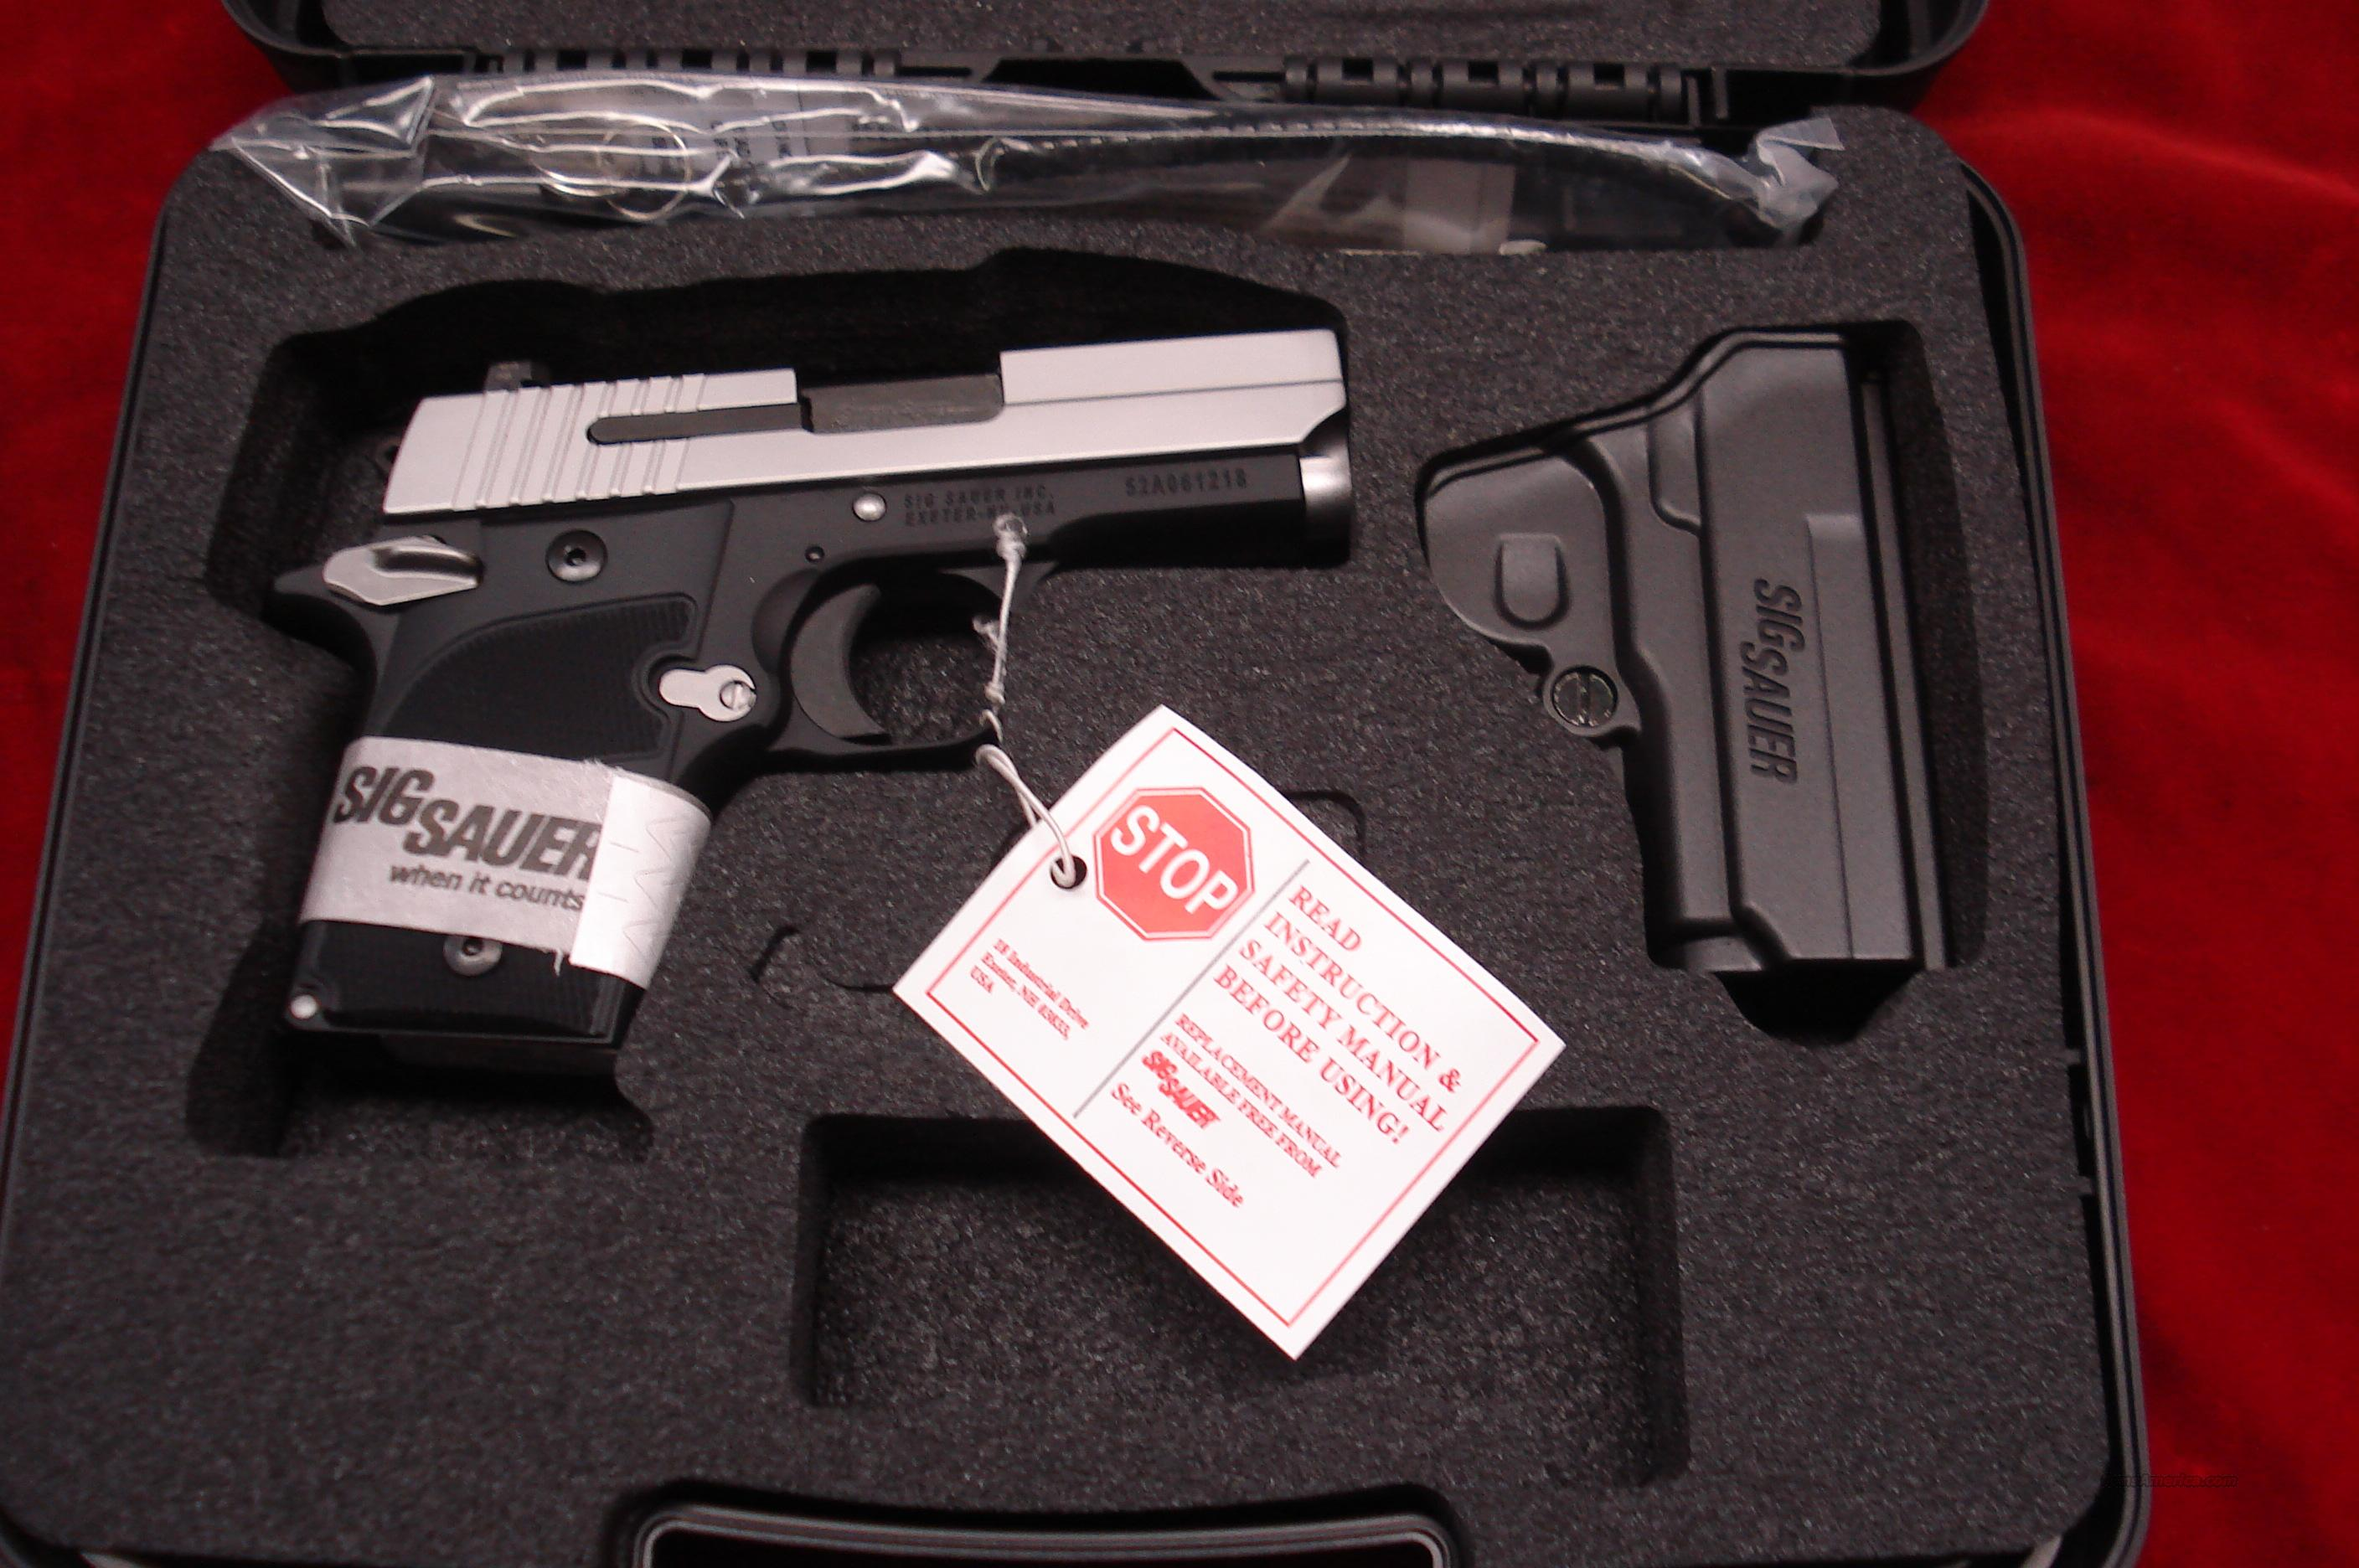 SIG SAUER 938 9MM STAINLESS SLIDE W/NIGHT SIGHTS NEW  Guns > Pistols > Sig - Sauer/Sigarms Pistols > Other